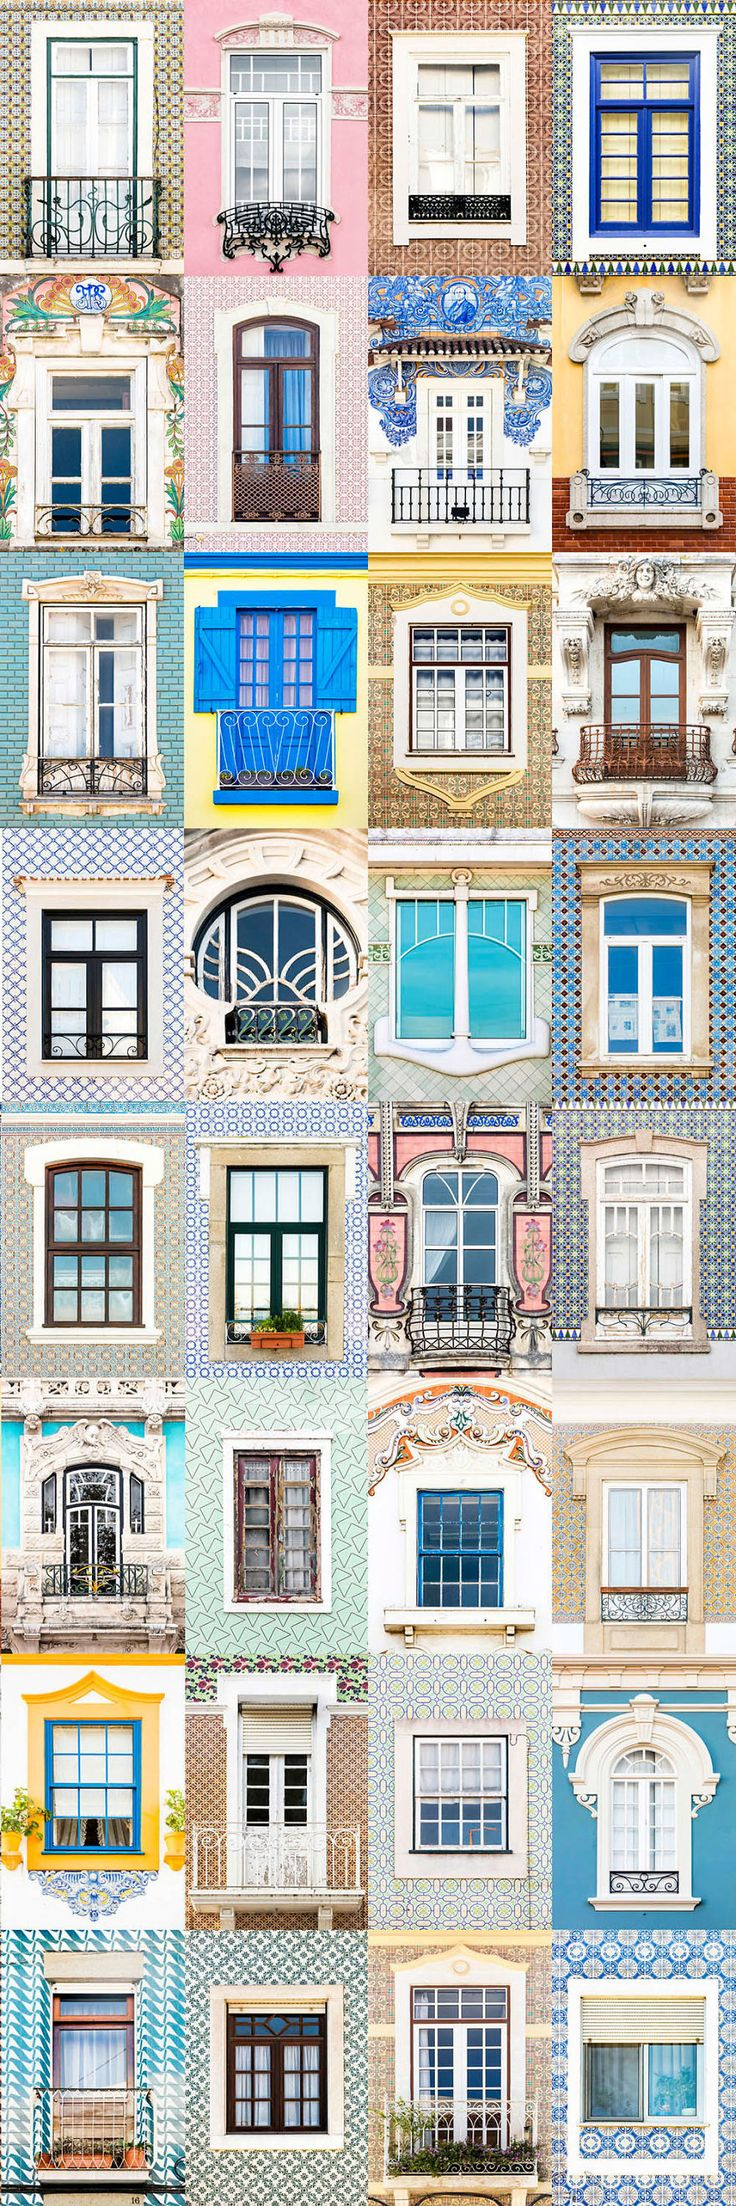 Cellular pvc window construction and technology - I Travelled All Over Portugal To Photograph Windows And Captured More Than 3200 Of Them